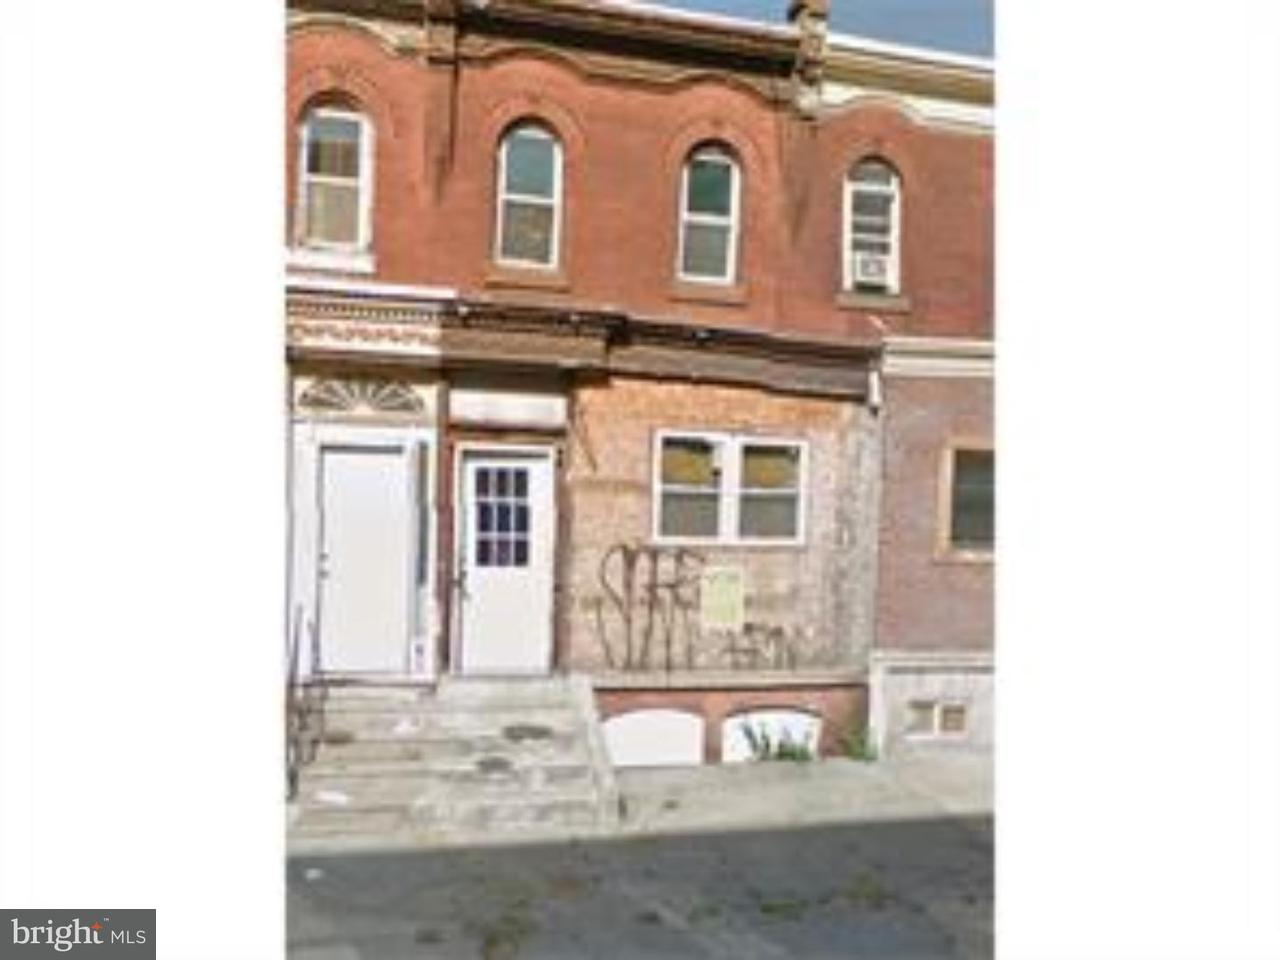 3306 N 13TH Philadelphia, PA 19140